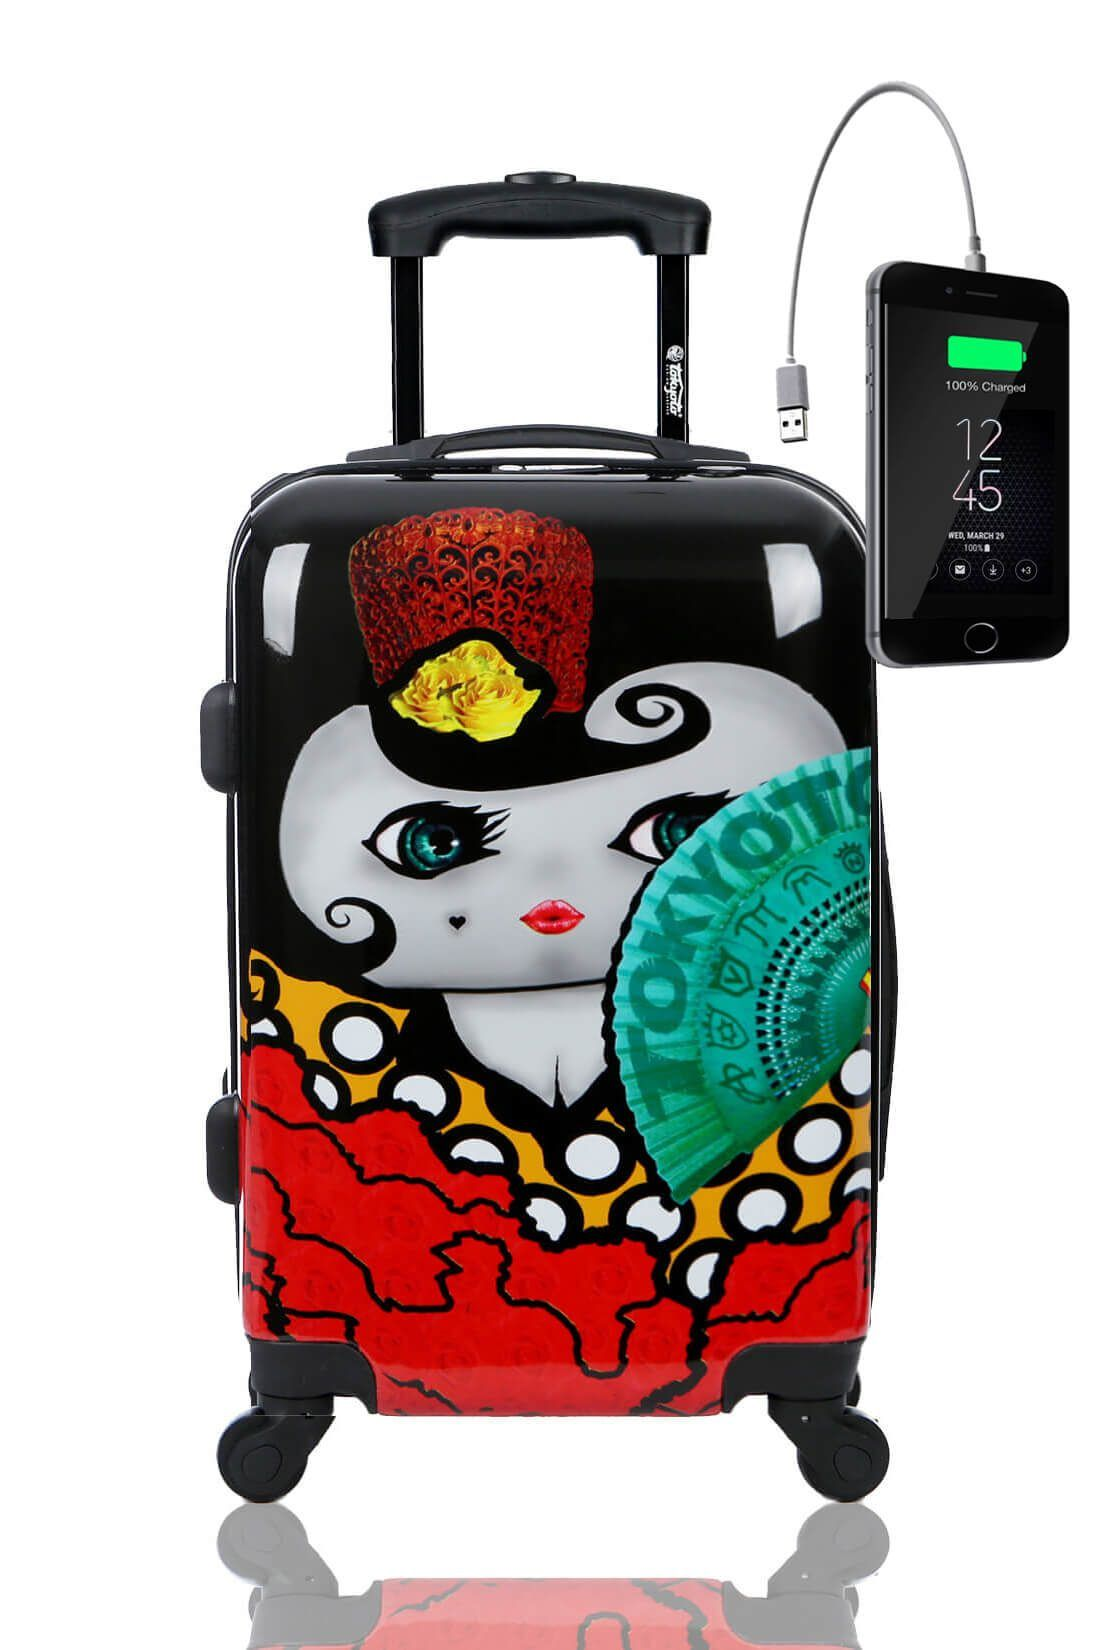 Kids Hand Trolley Cabin Luggage Suitcase Online Powerbank USB TOKYOTO FLAMENCA